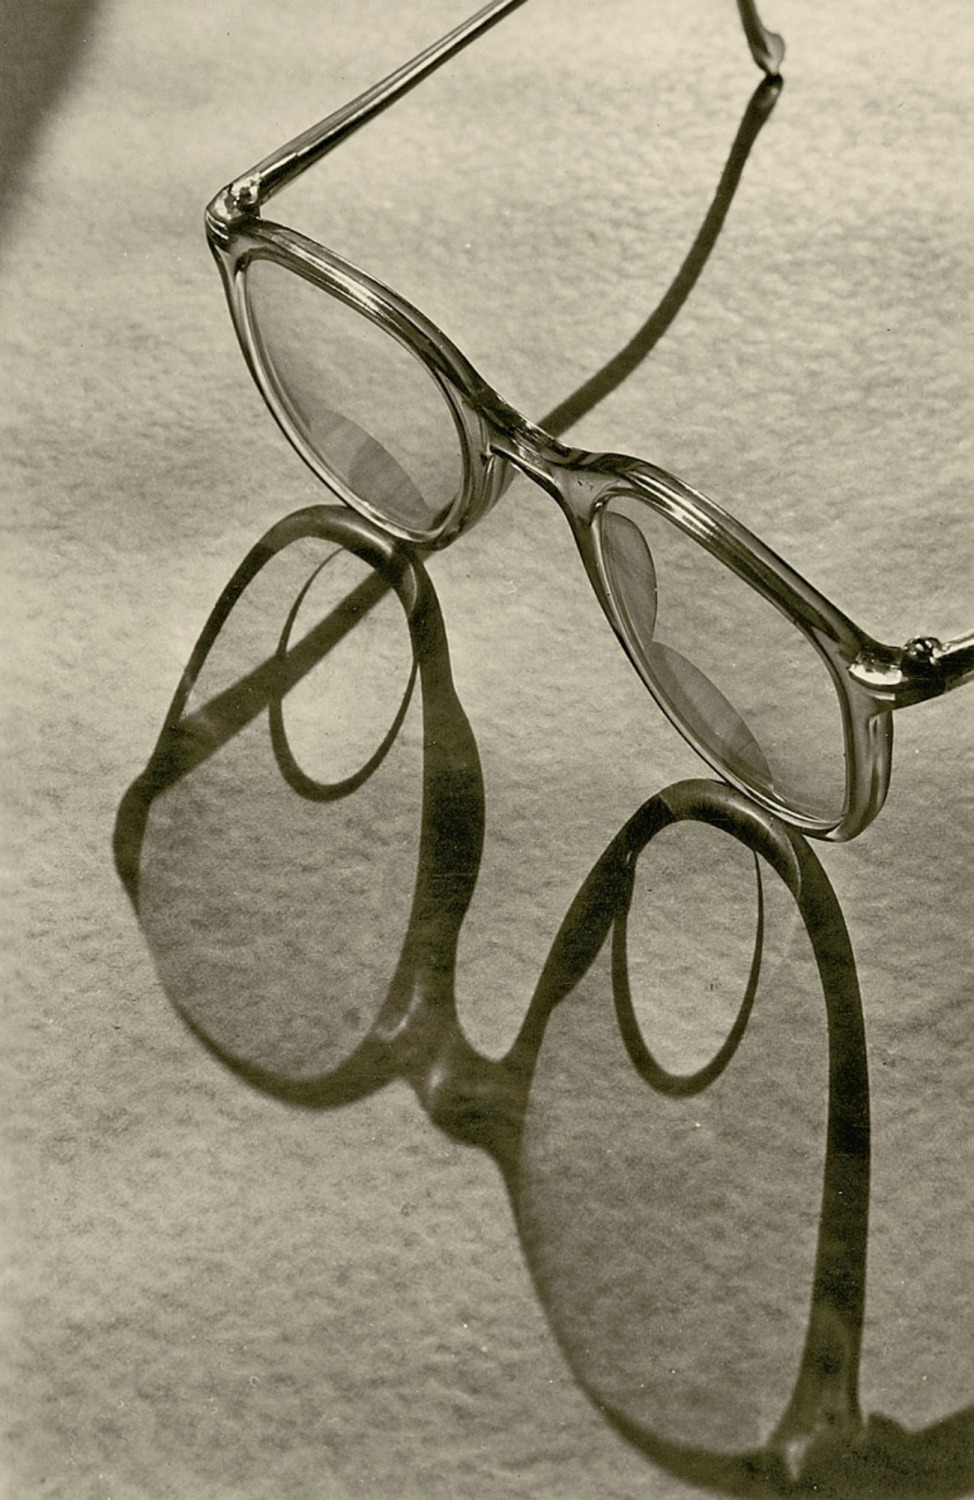 MAX BAUR   GLASSES MADE OF BIFOKAL GLASS  1920s